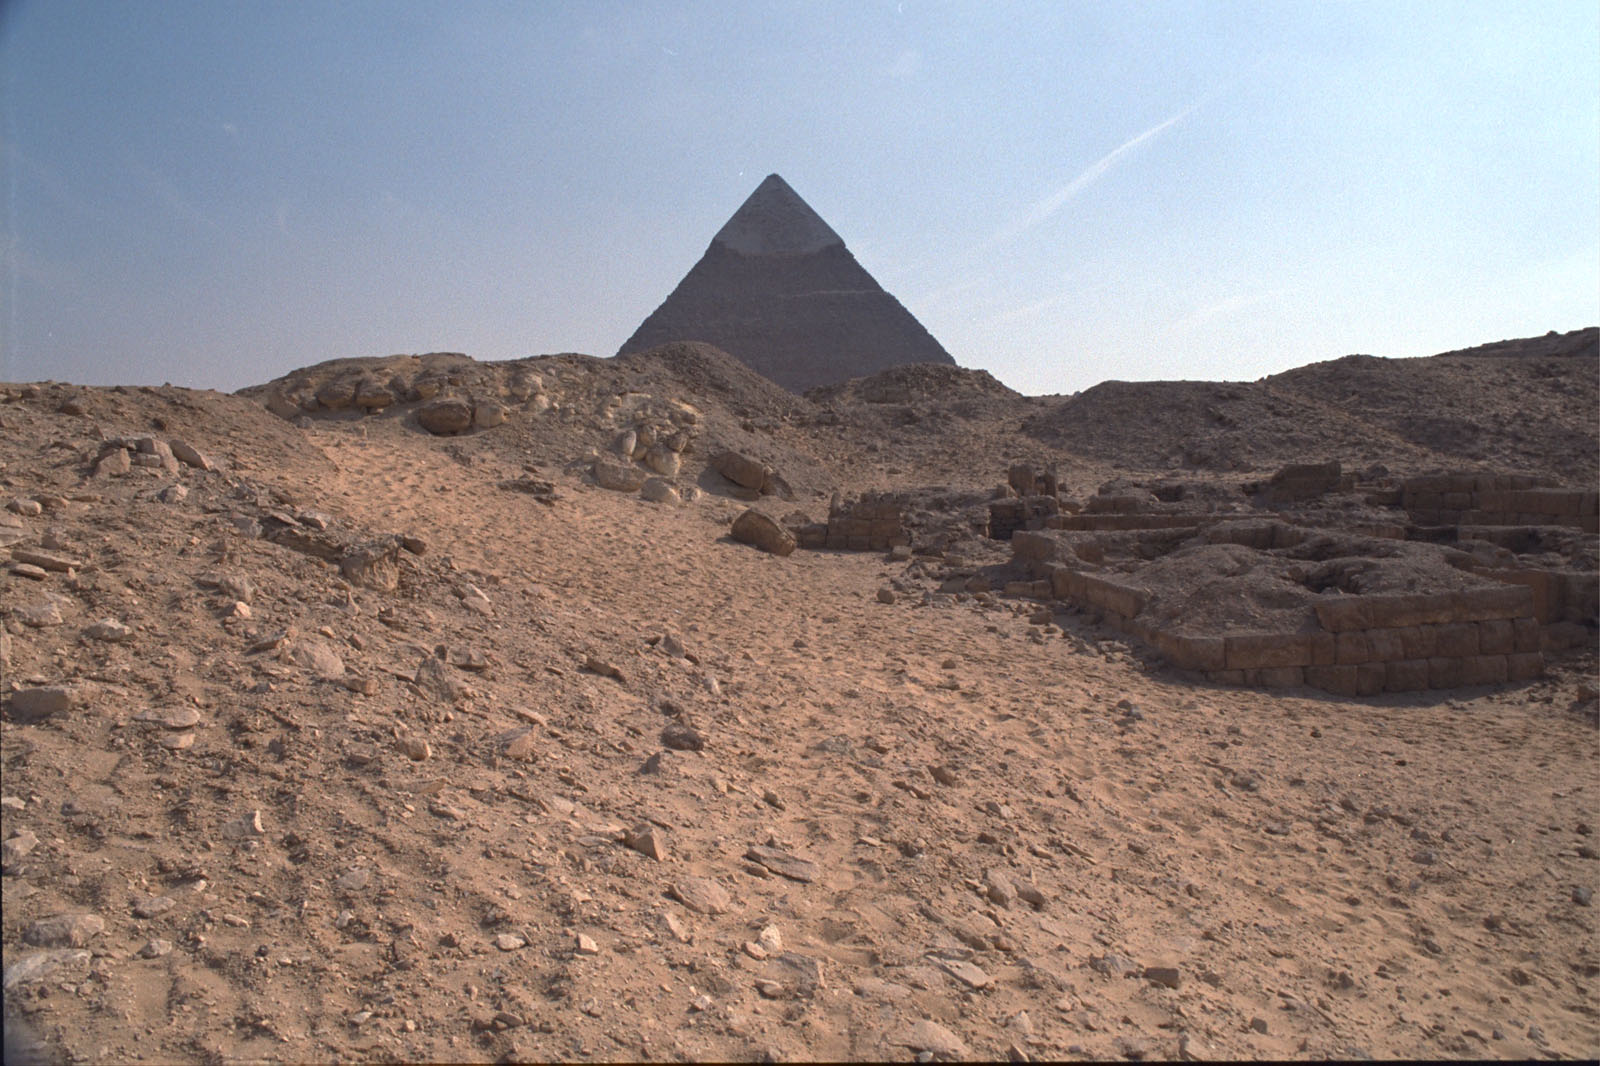 Western Cemetery: Site: Giza; View: G 2245, G 2244, G 2246, G 2243, G 2240, G 2231